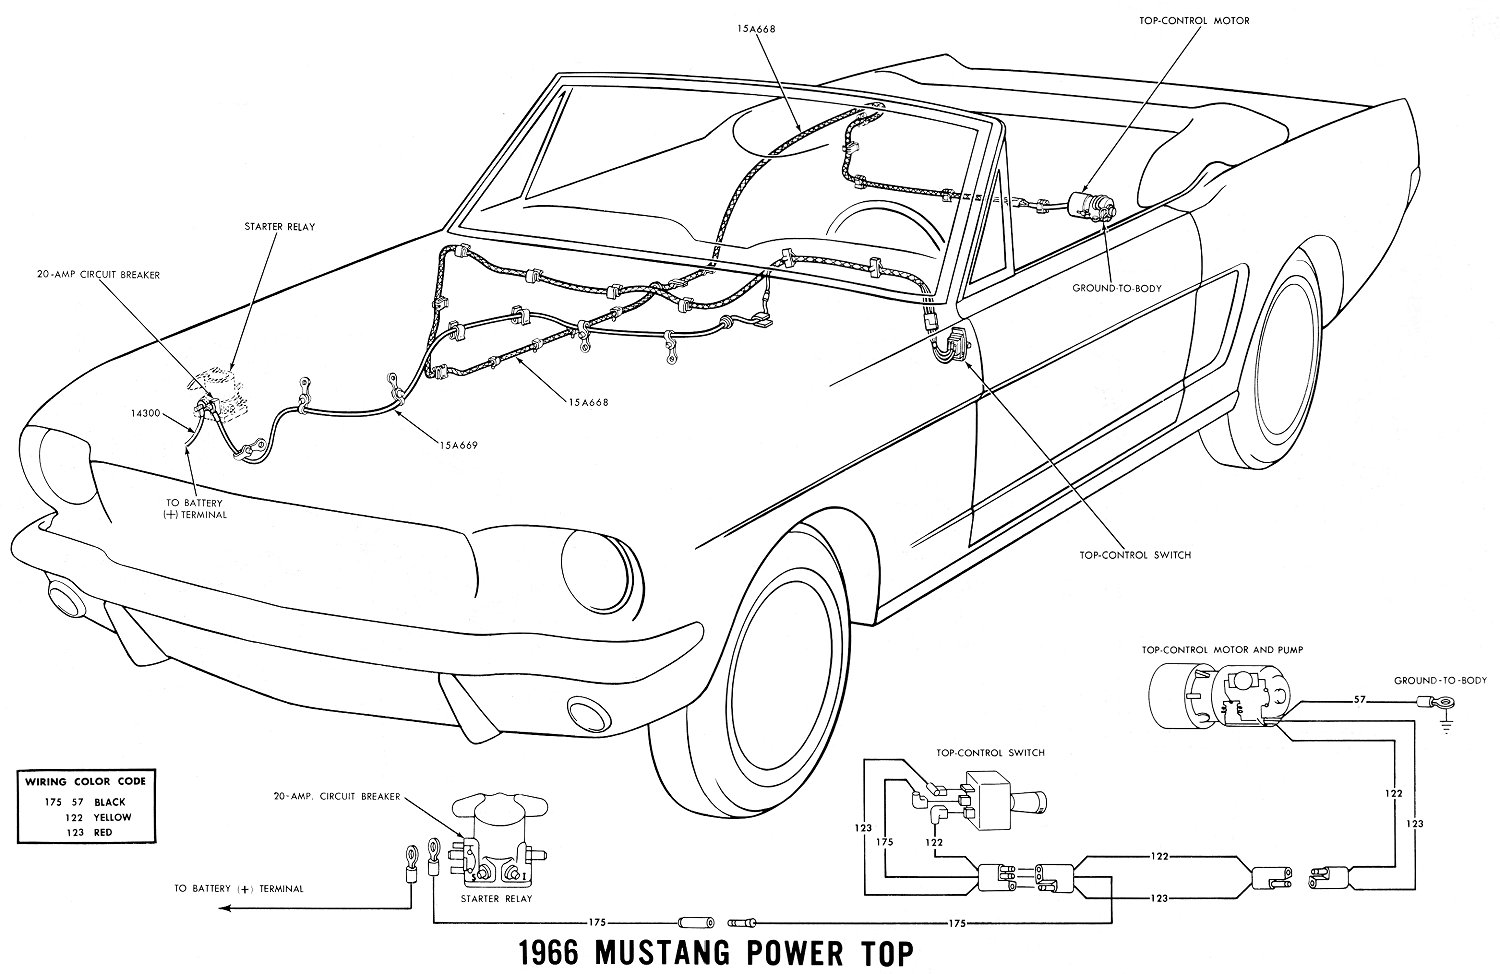 Vintage Mustang Wiring Diagrams 1968 Headlight Switch Diagram 66 Power Convertible Top Details